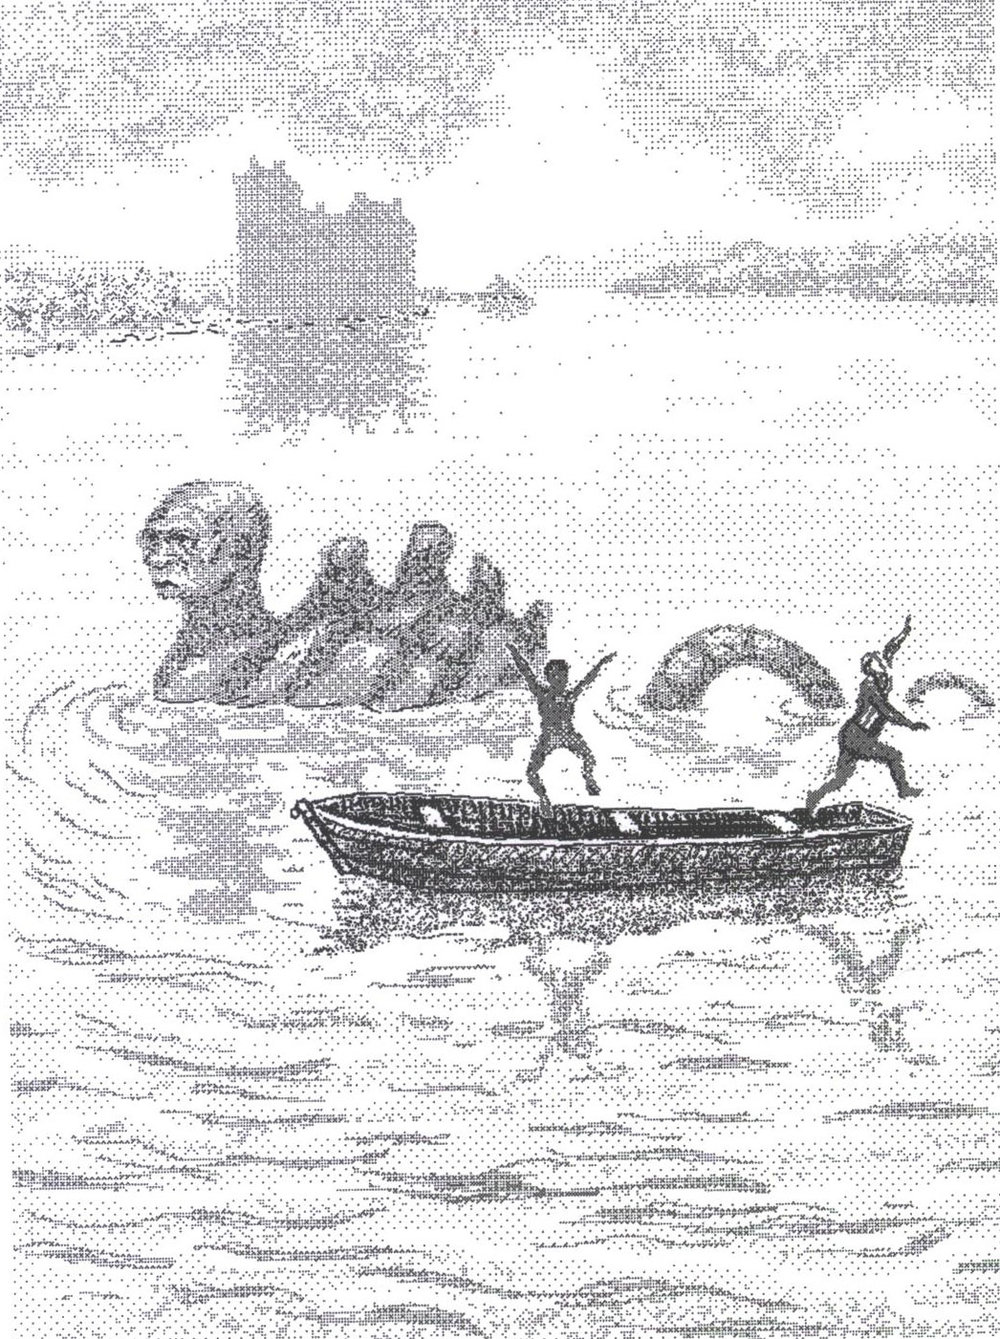 Loch Ness Monster , 1998. Microsoft Paint image, printed on rice paper.